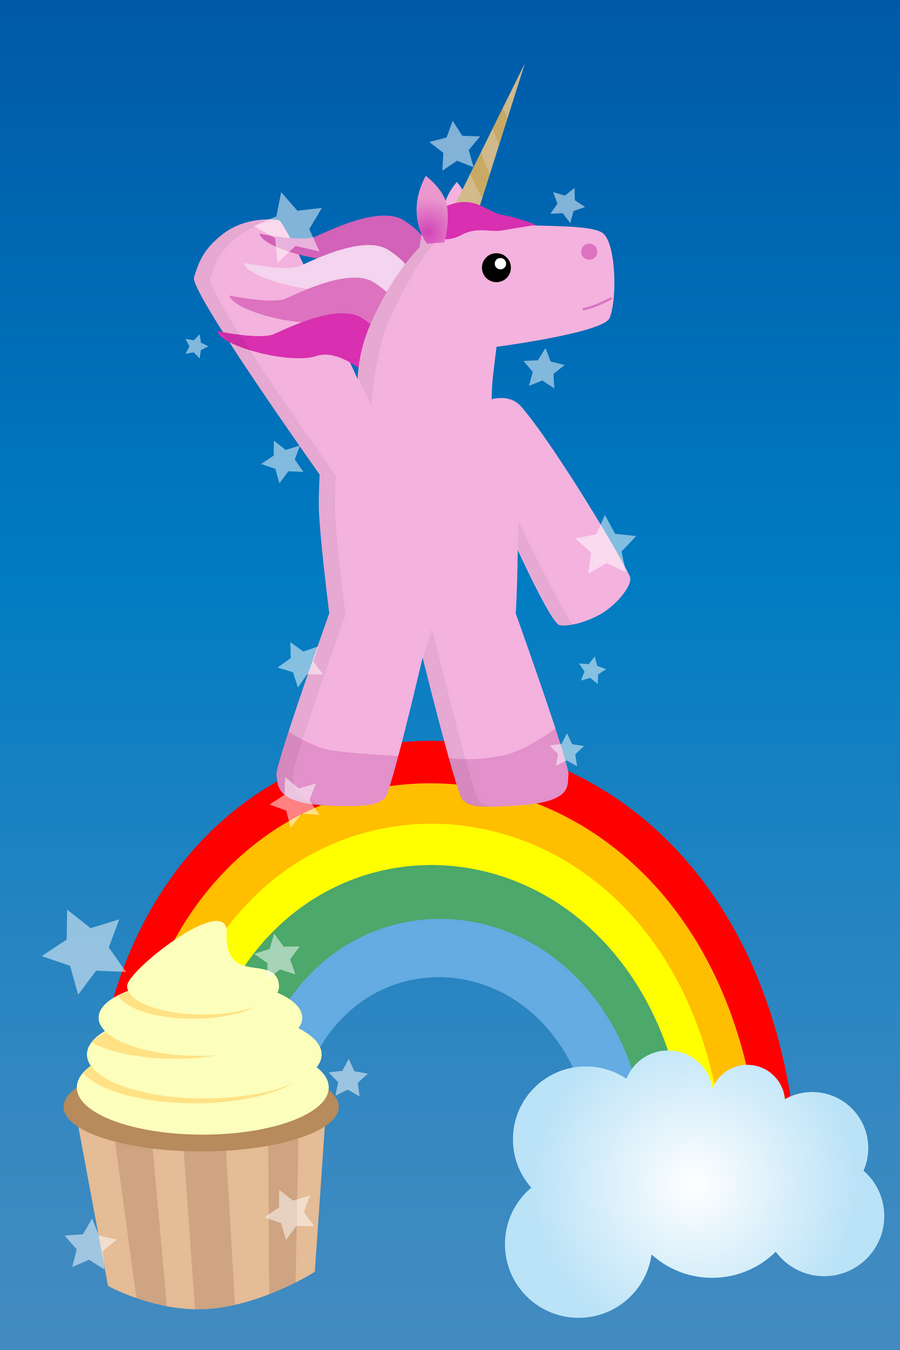 The request a picture forum  Unicorns And Rainbows Tumblr